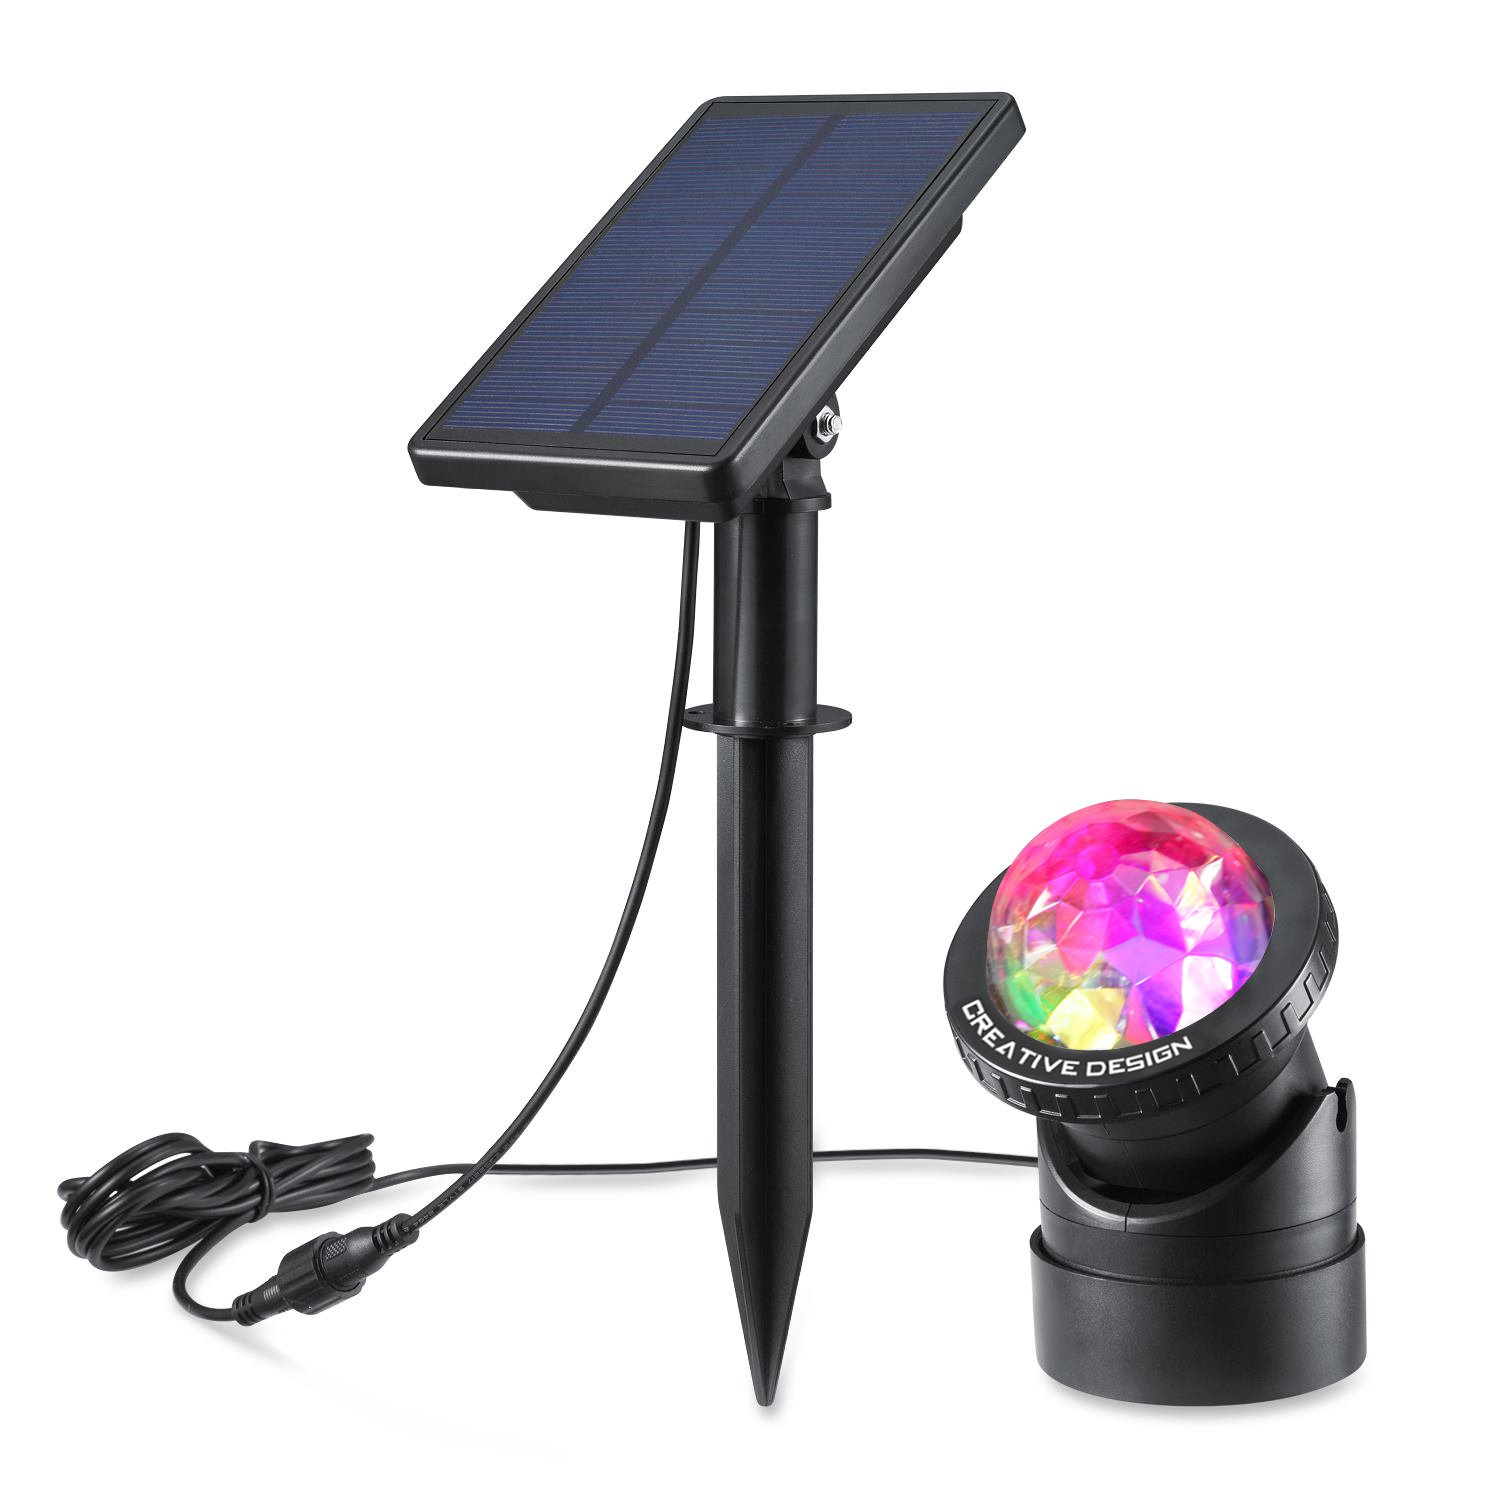 Hot Sale 2017 Creative Design Multicolored Submersible Led Lights, Solar